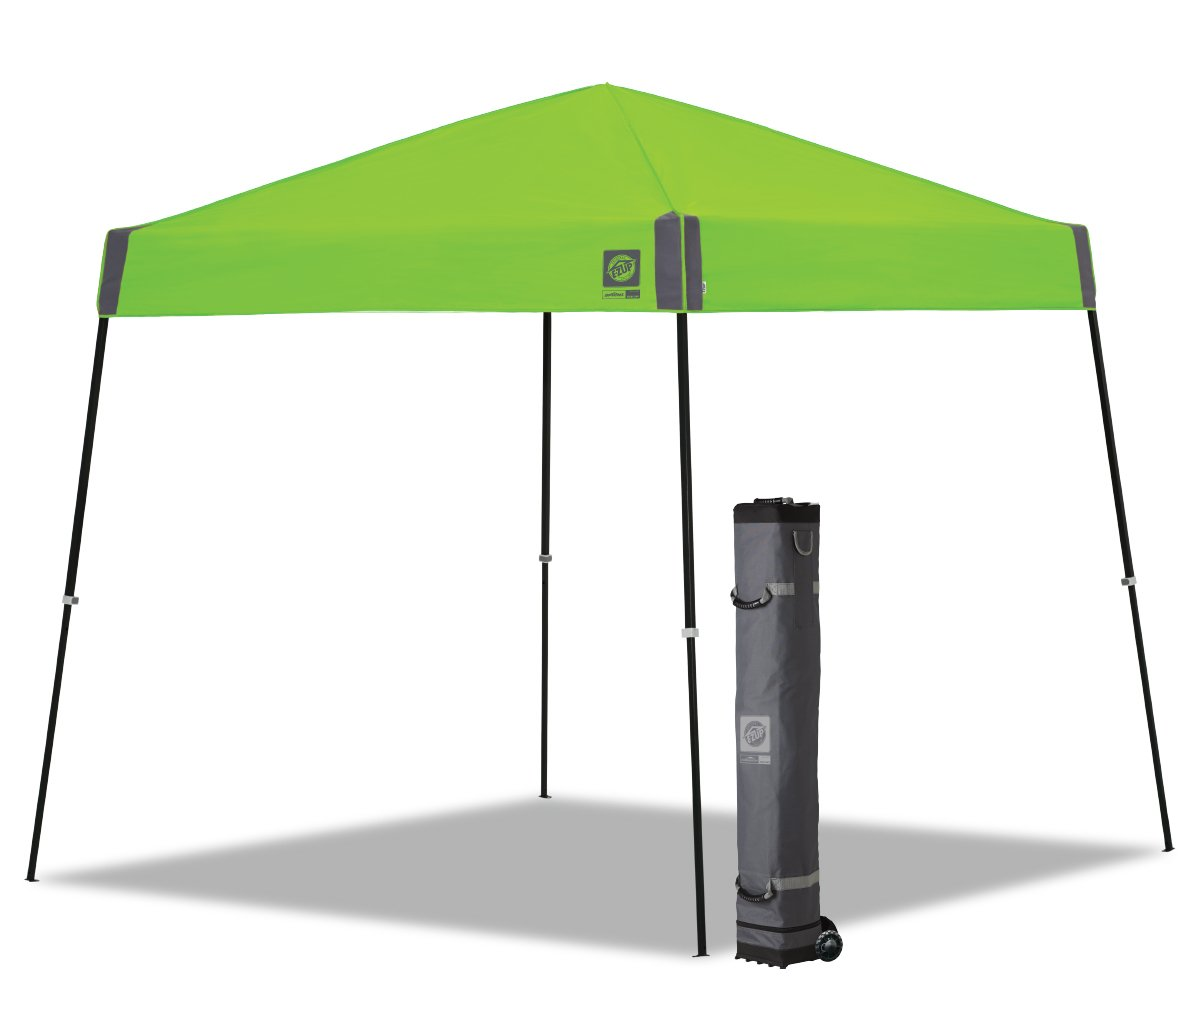 E-Z UP Sprint Instant Shelter Canopy, 10 by 10', Kiwi